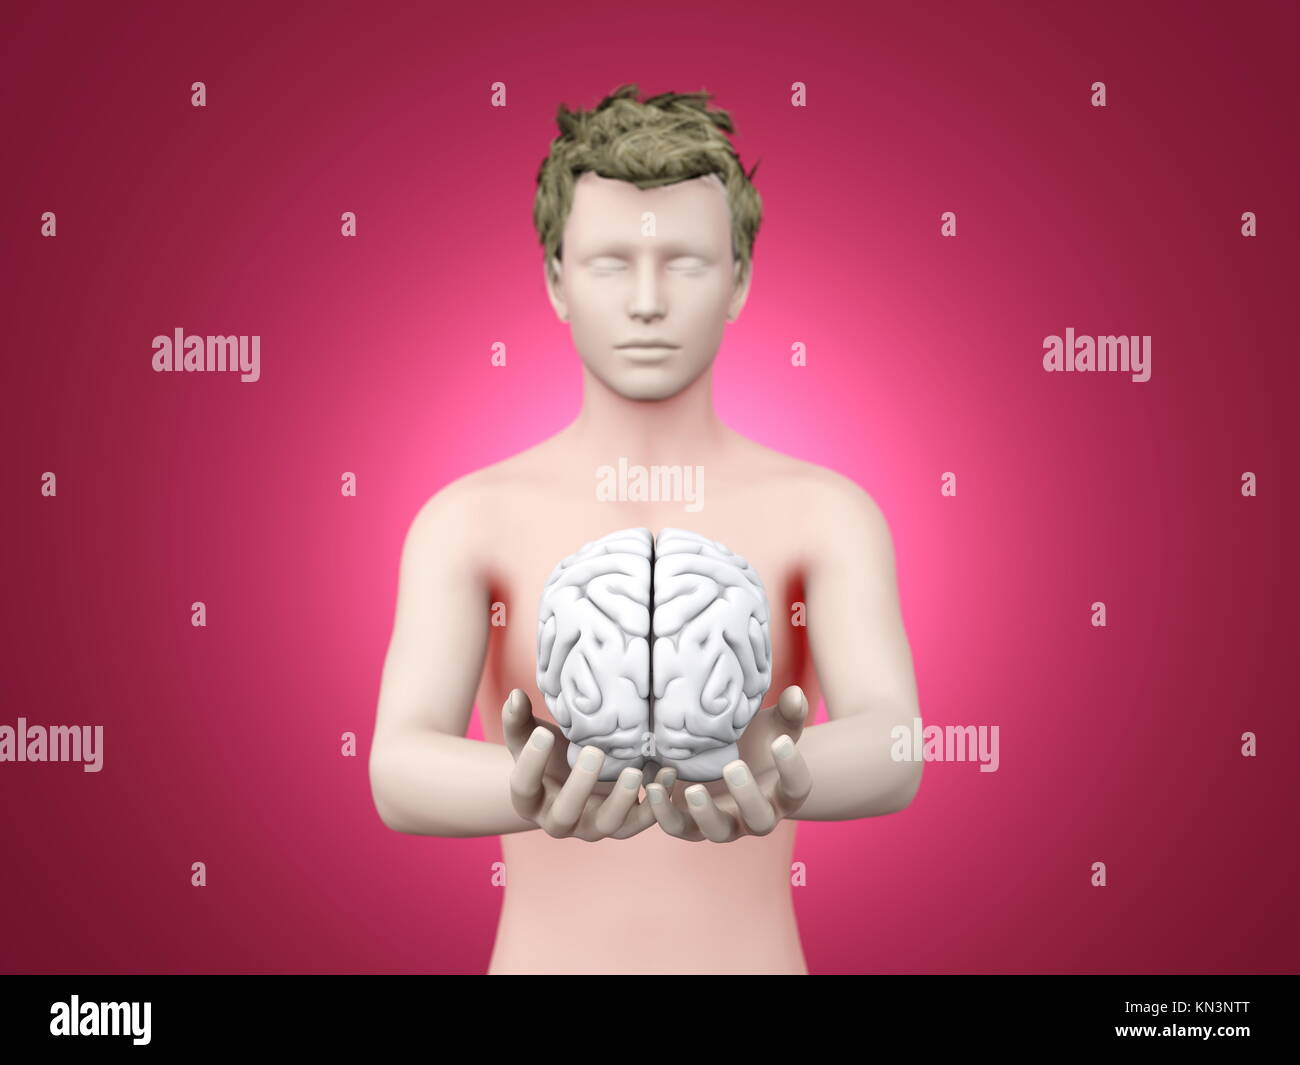 Holding a brain. 3D rendered illustration. - Stock Image